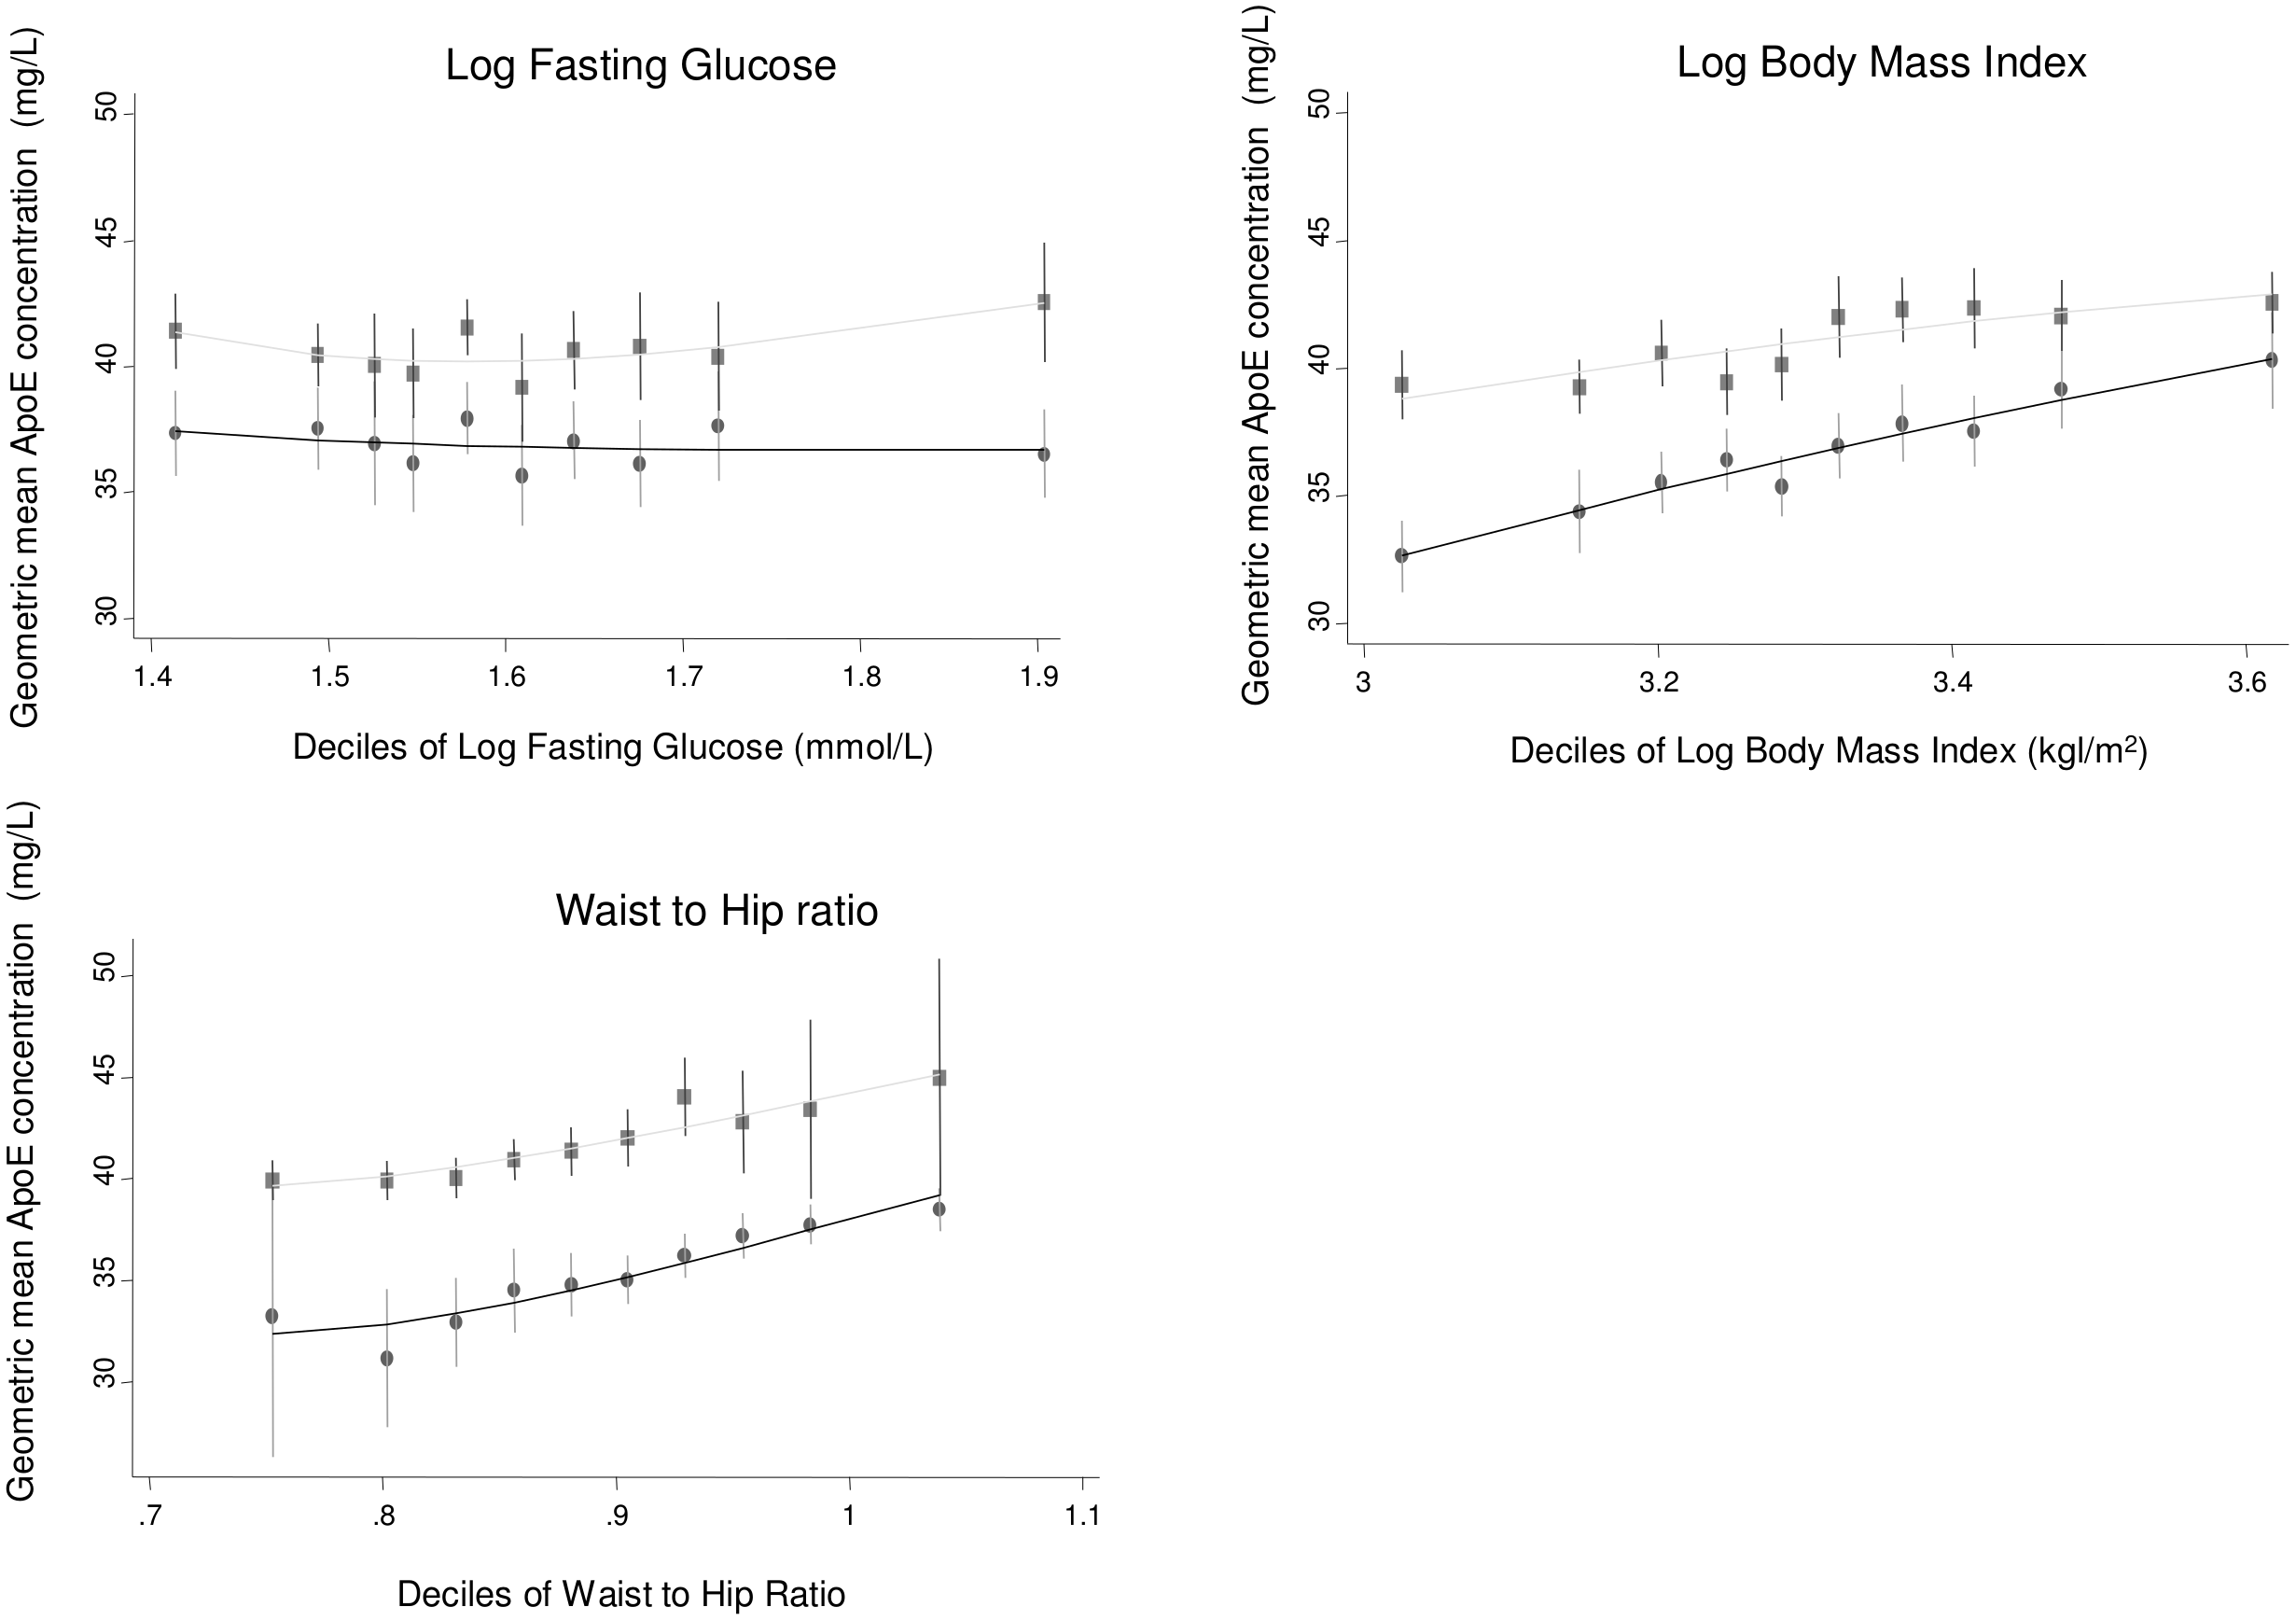 Cross-sectional association between geometric mean of ApoE concentration and glucose, body mass index, and waist-to-hip ratio measured in ELSA, by gender.